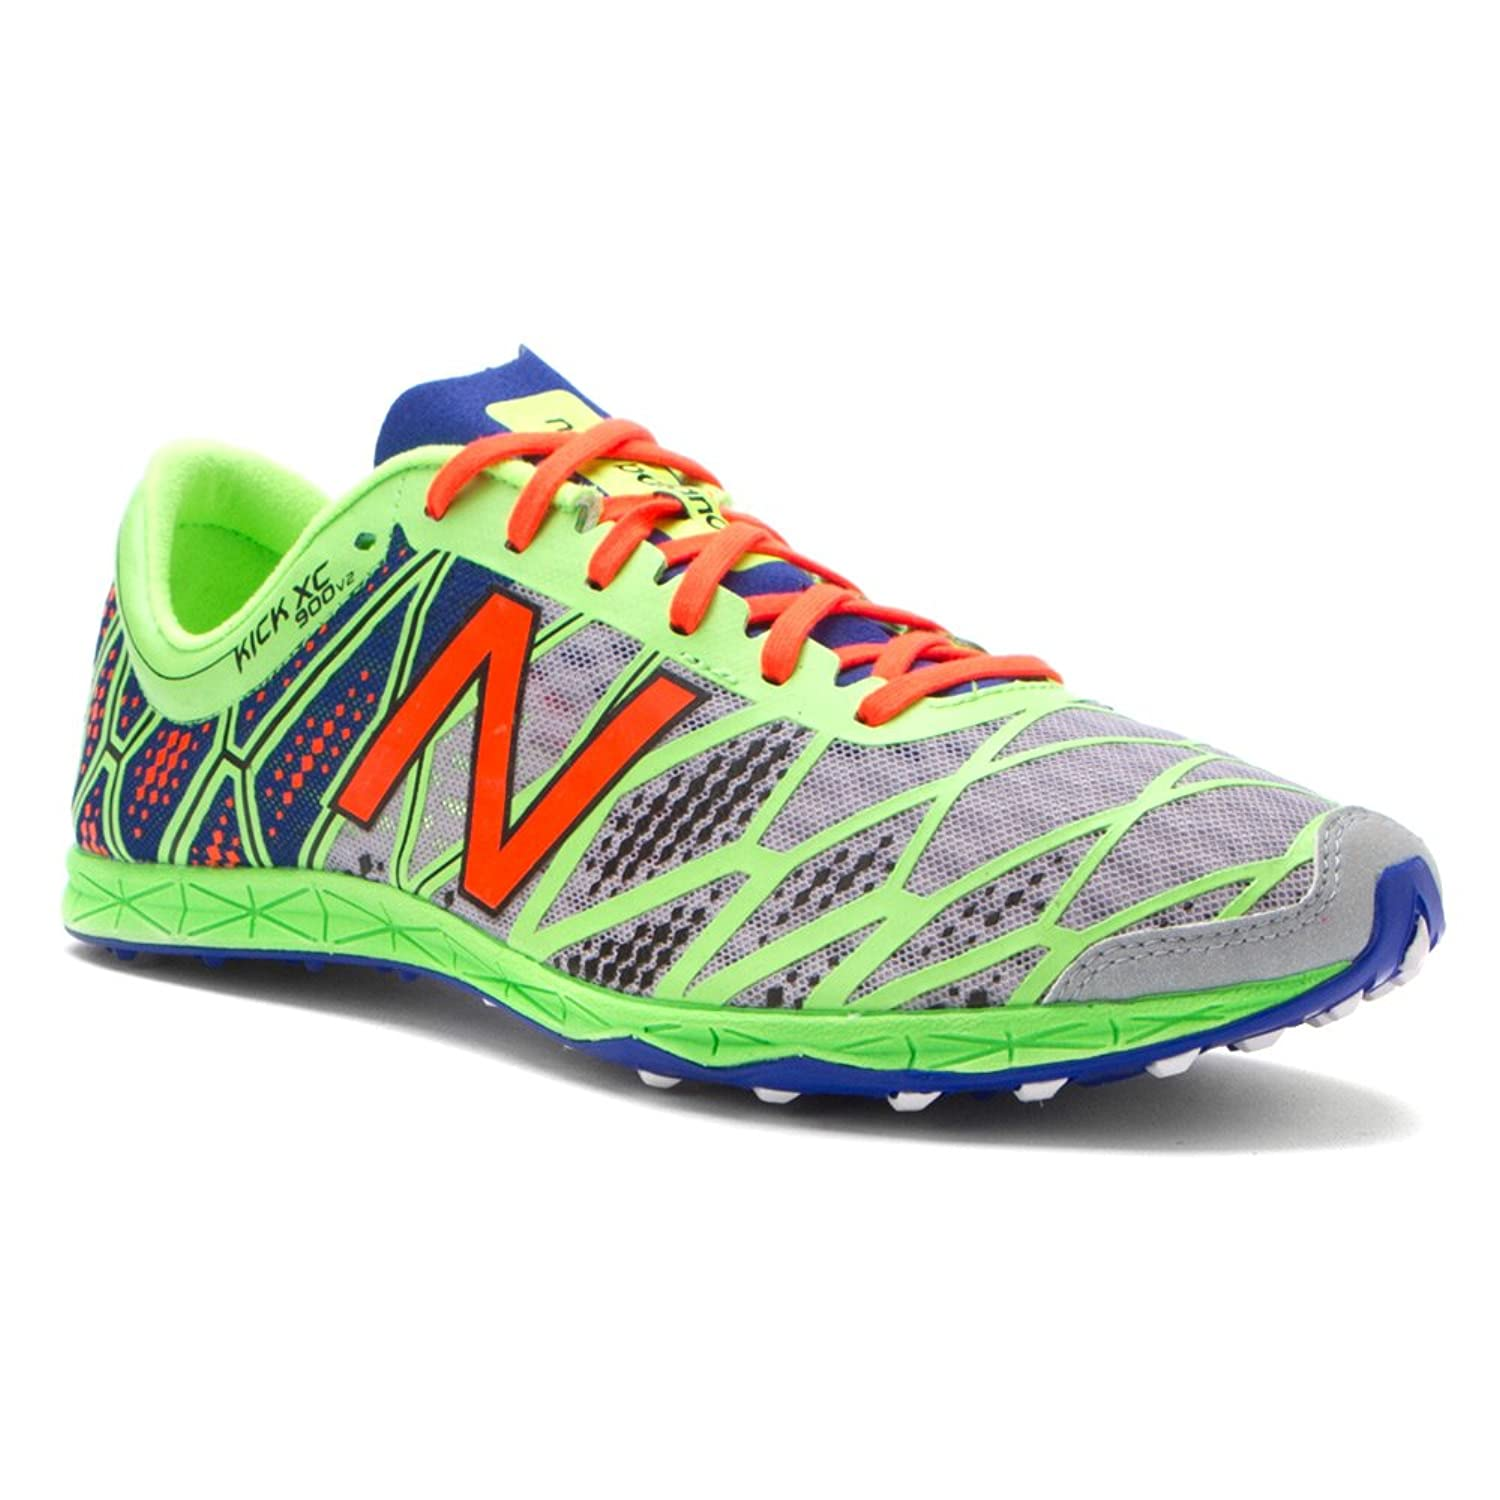 Amazon.com   New Balance Men's MXC900 Cross Country Spikes Shoe, Silver/ Green, 7.5 D US   Track & Field & Cross Country